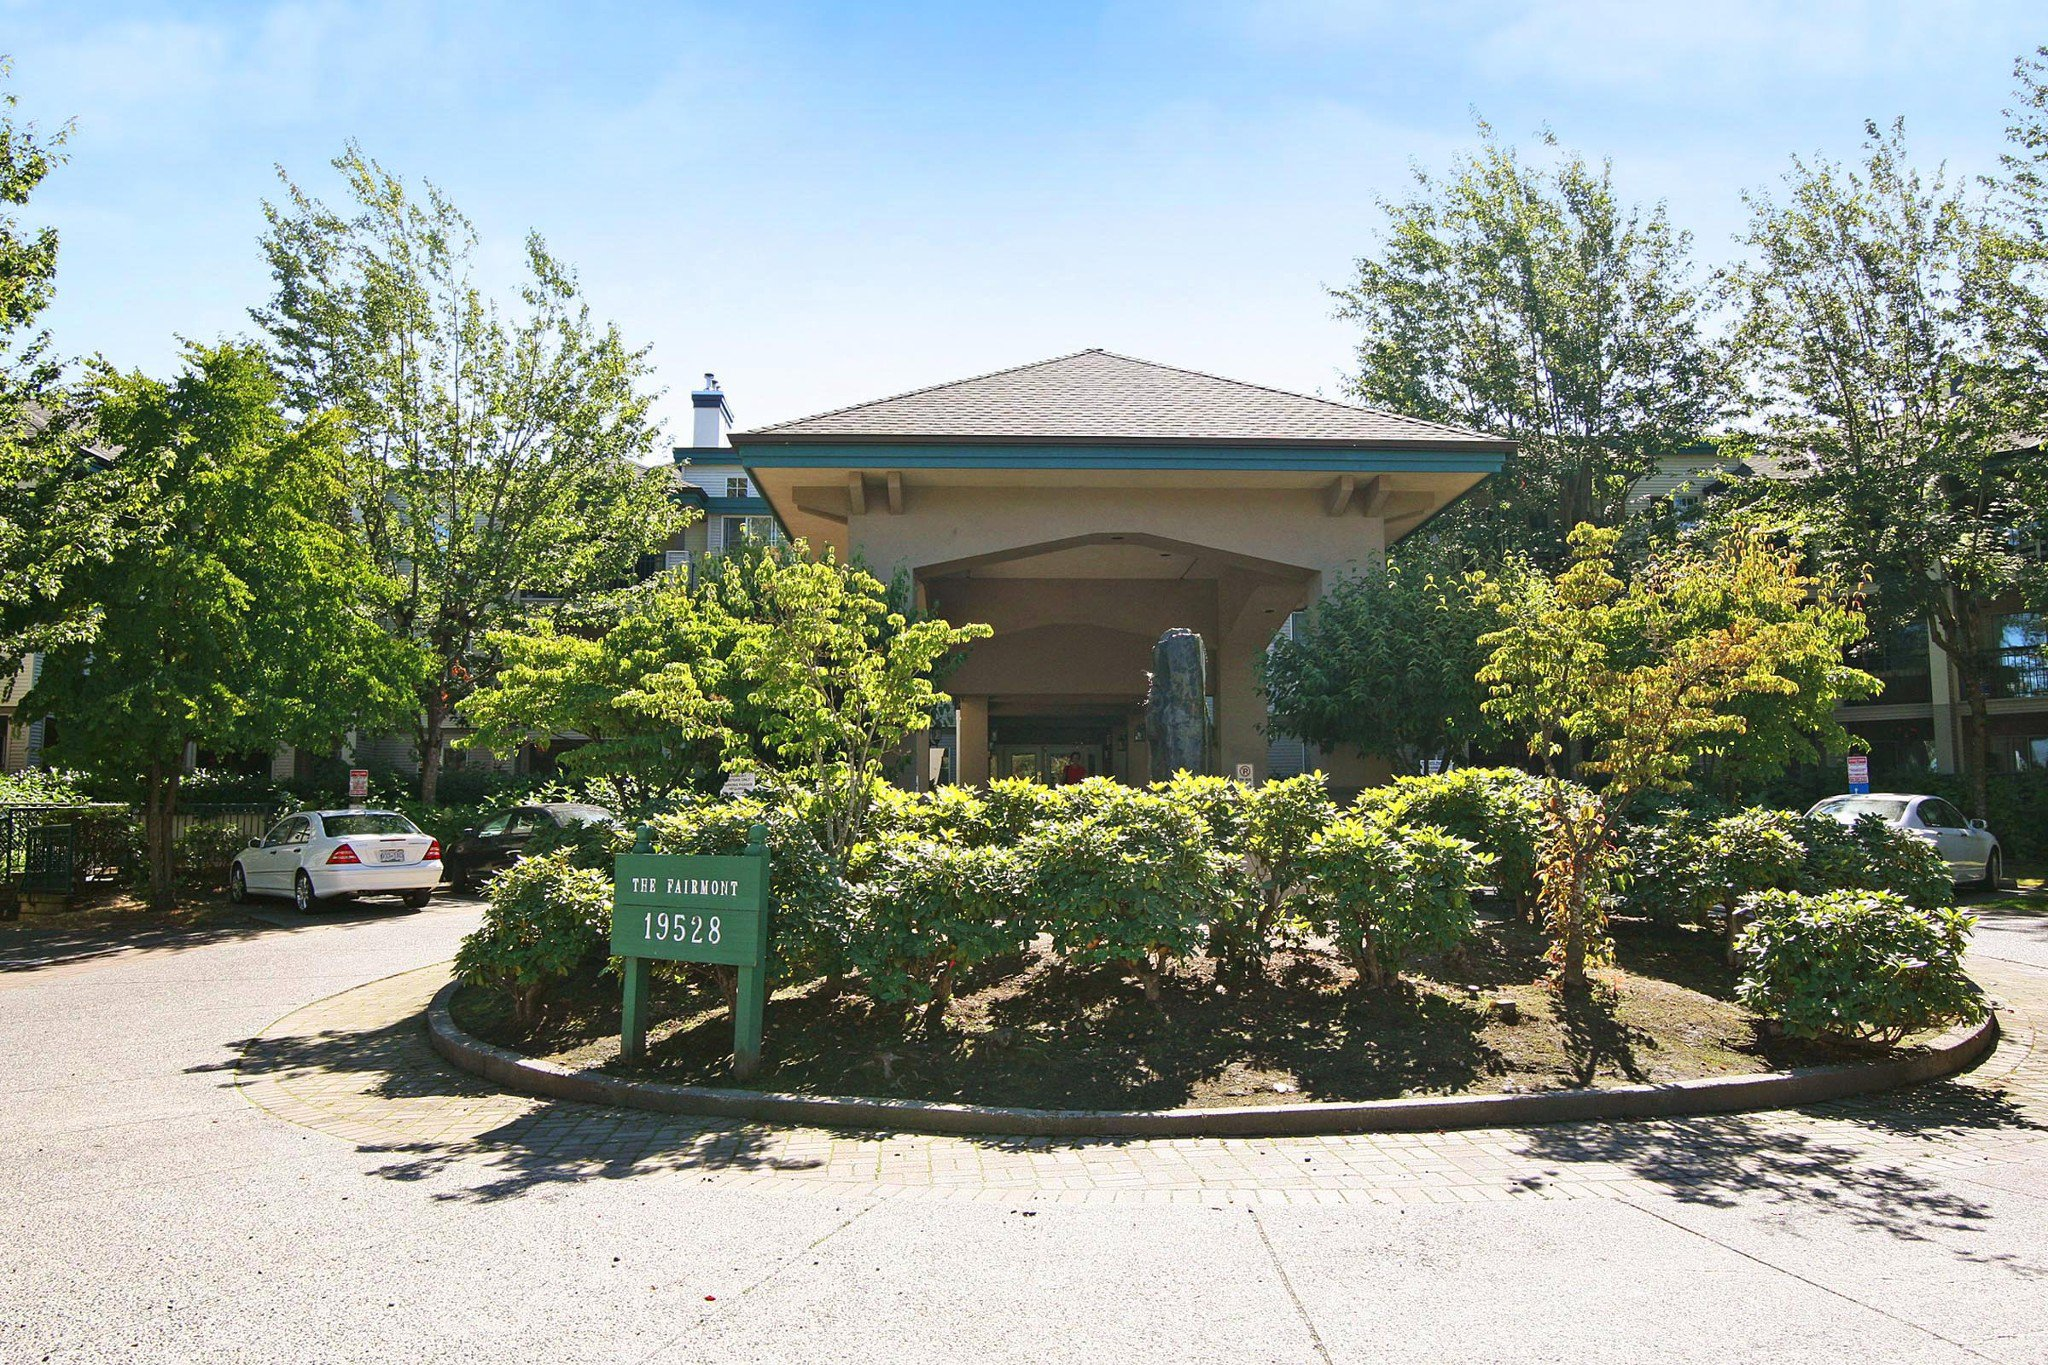 "Main Photo: 306 19528 FRASER Highway in Surrey: Cloverdale BC Condo for sale in ""FAIRMONT"" (Cloverdale)  : MLS®# R2219963"